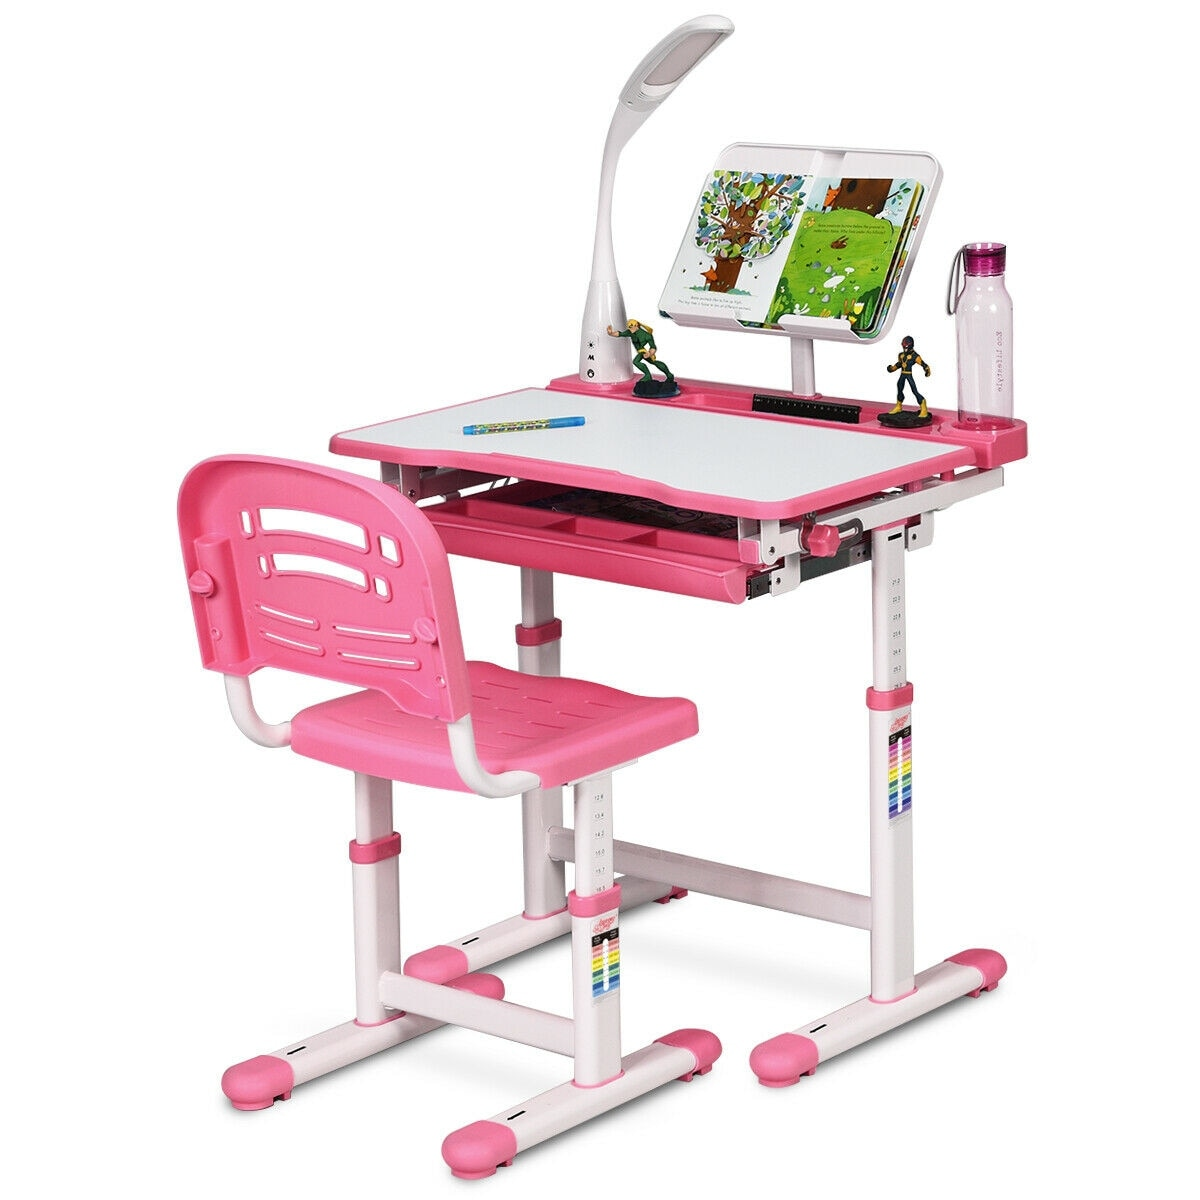 Incredible Gymax Height Adjustable Kids Desk Chair Set Study Drawing W Lamp Bookstand Pink Forskolin Free Trial Chair Design Images Forskolin Free Trialorg